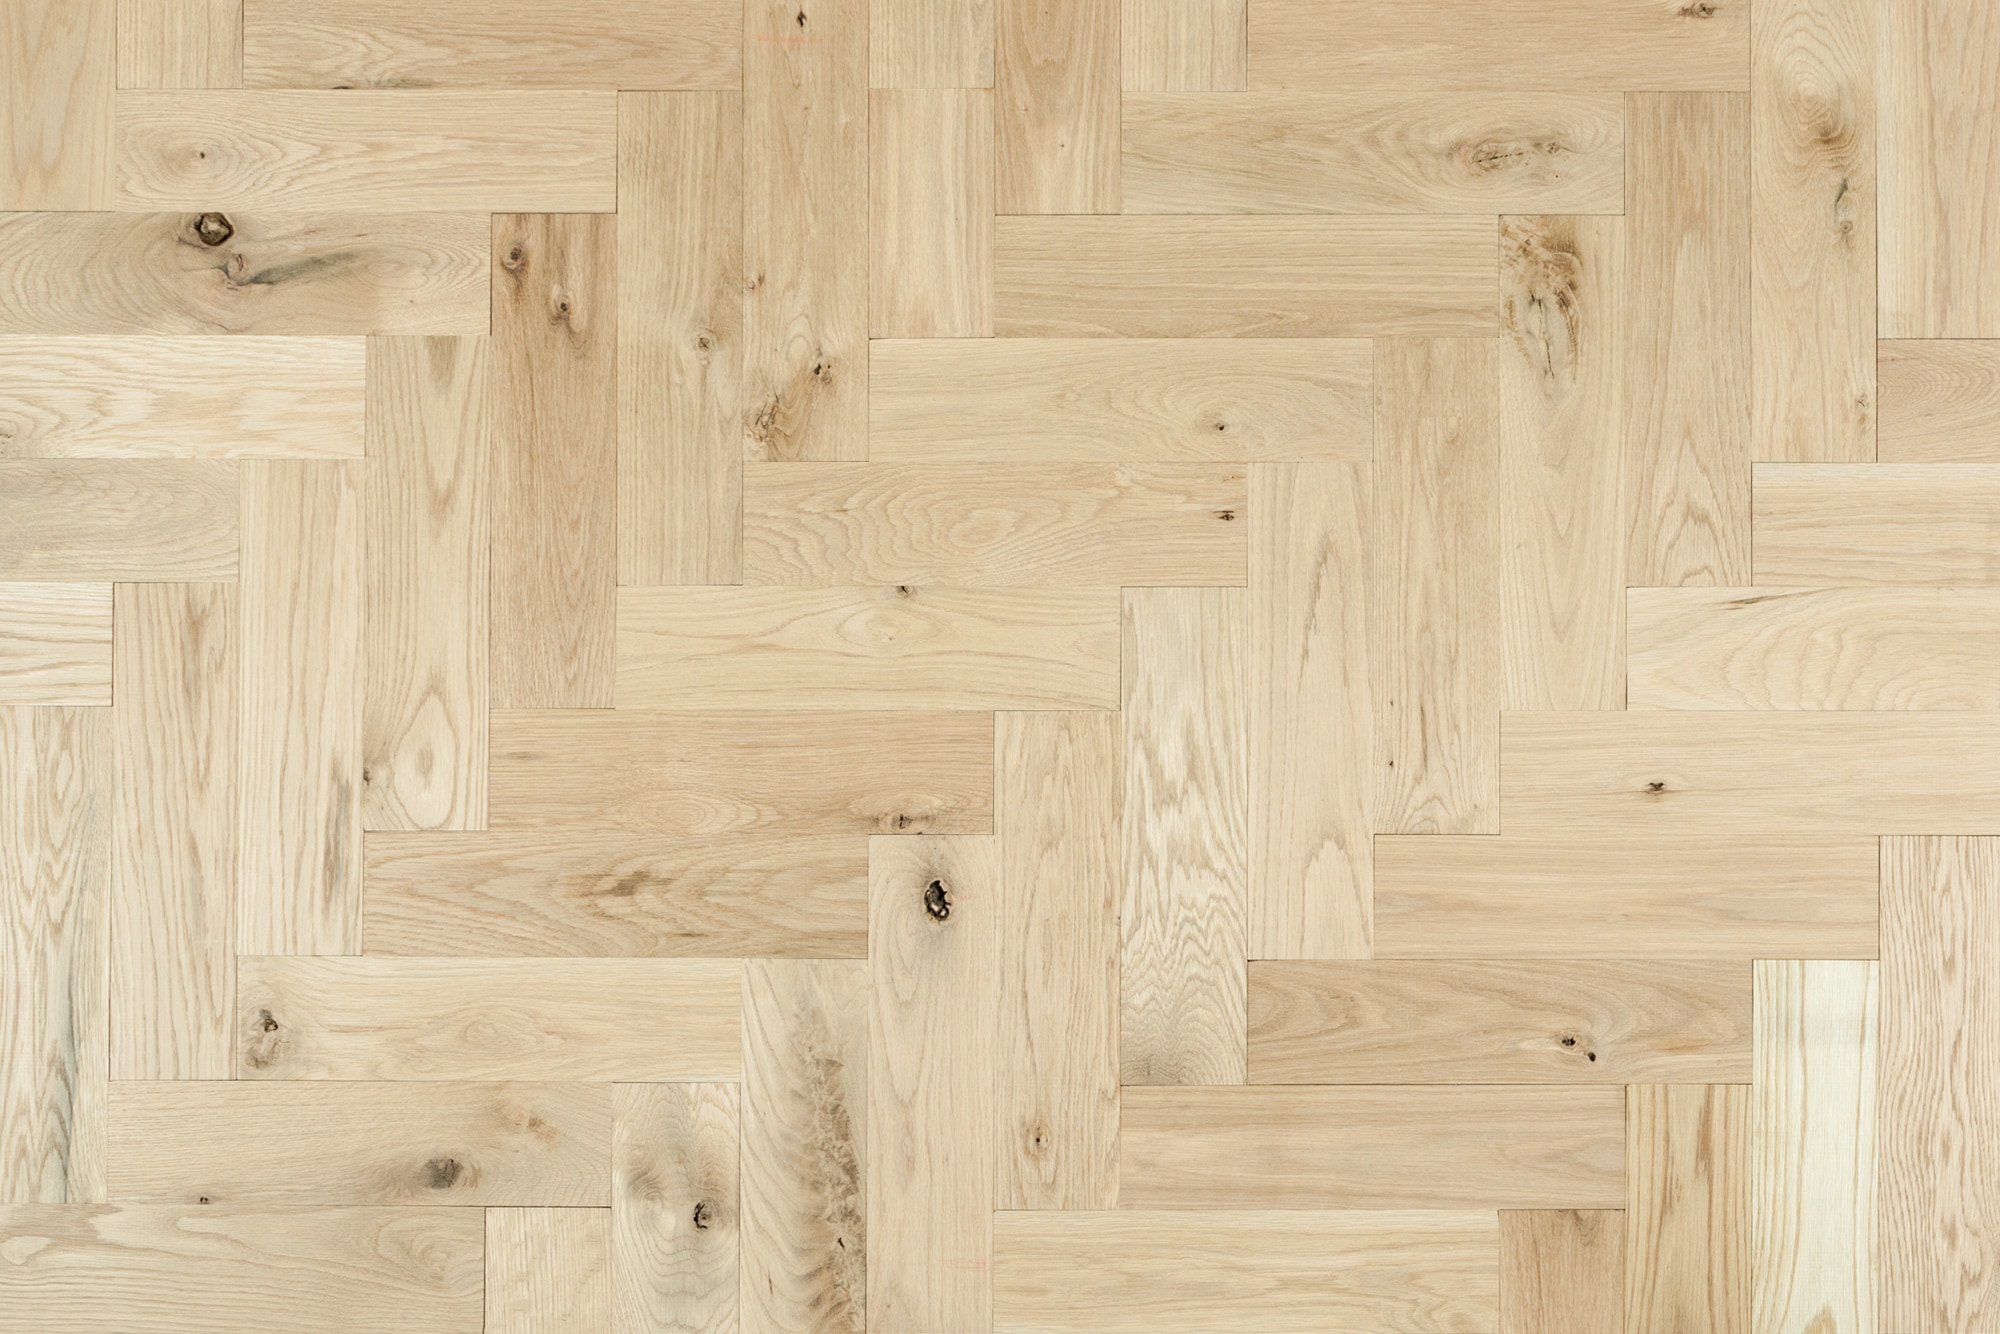 Tungston Tungston Plank - Herringbone White Oak Flooring Herringbone /  White Oak / Natural / 4